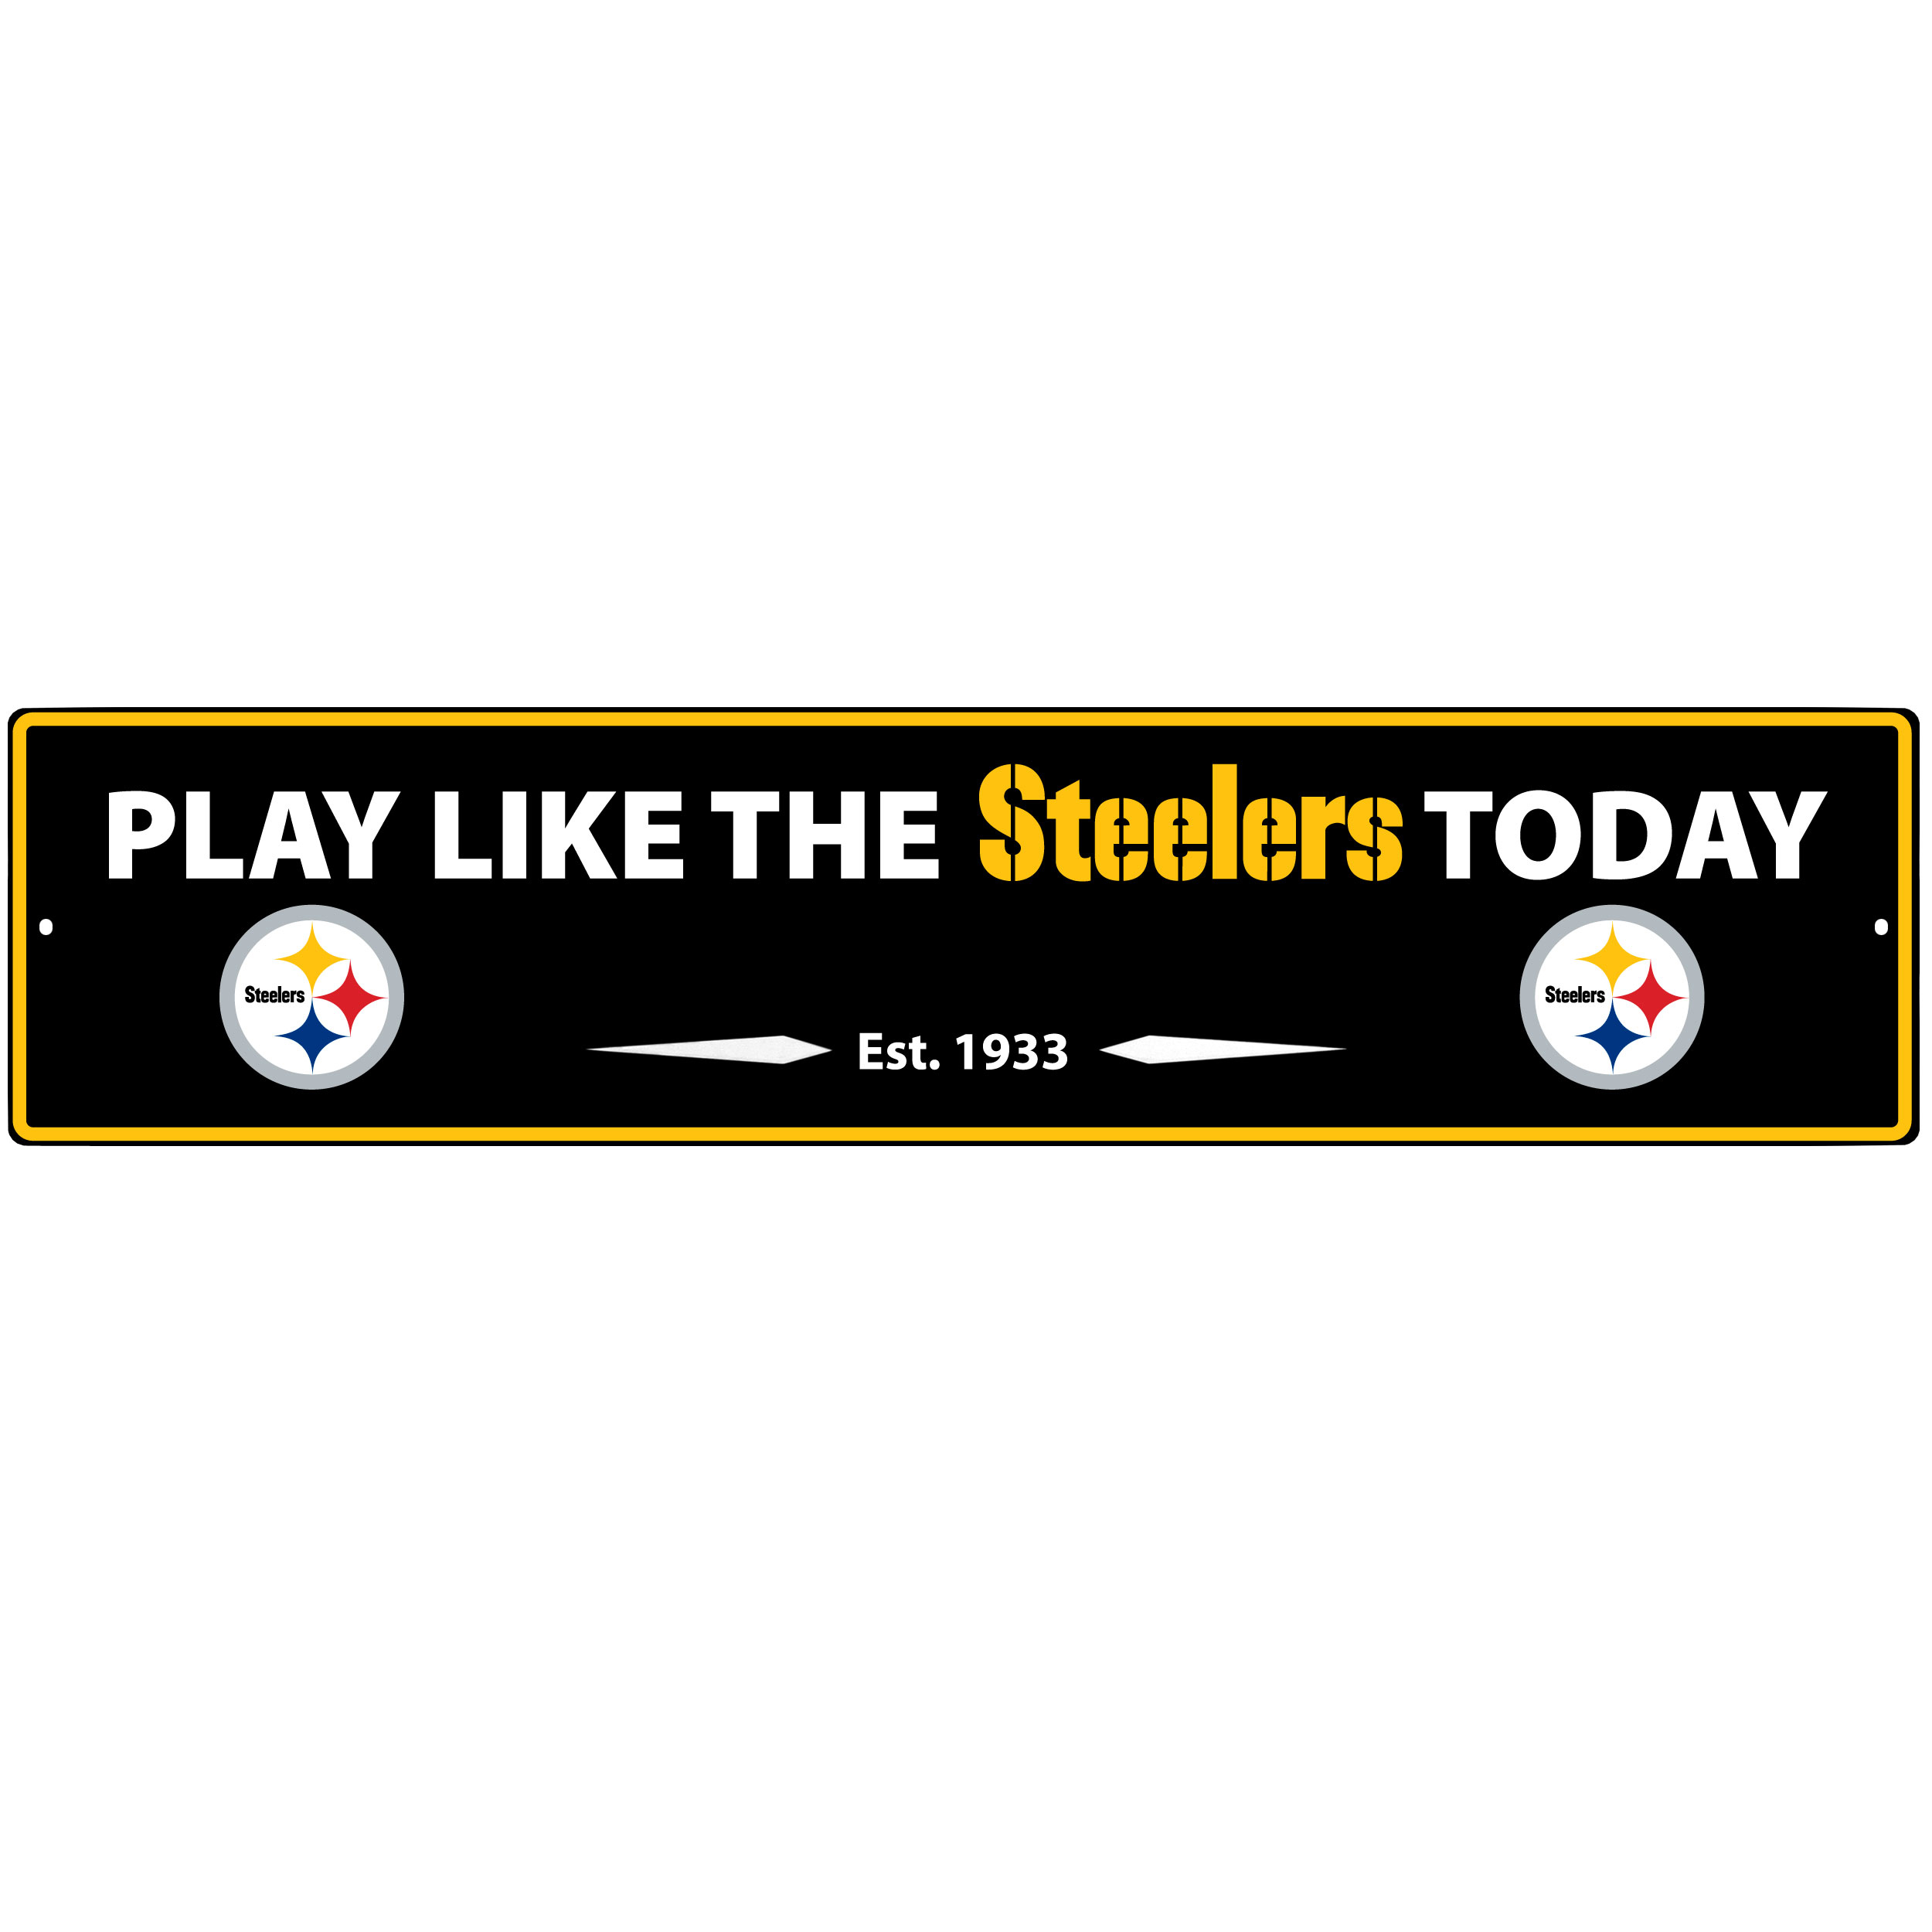 Pittsburgh Steelers Street Sign Wall Plaque - This motivational plaque is perfect for hanging over the doorway of your fan cave reminding you to play like your champion Pittsburgh Steelers! The sign is 20 inches wide and made of light-weight stamped aluminum. The bright team colors and classic design make this a must-have home décor accessory that would look great in any game room, living room or office!